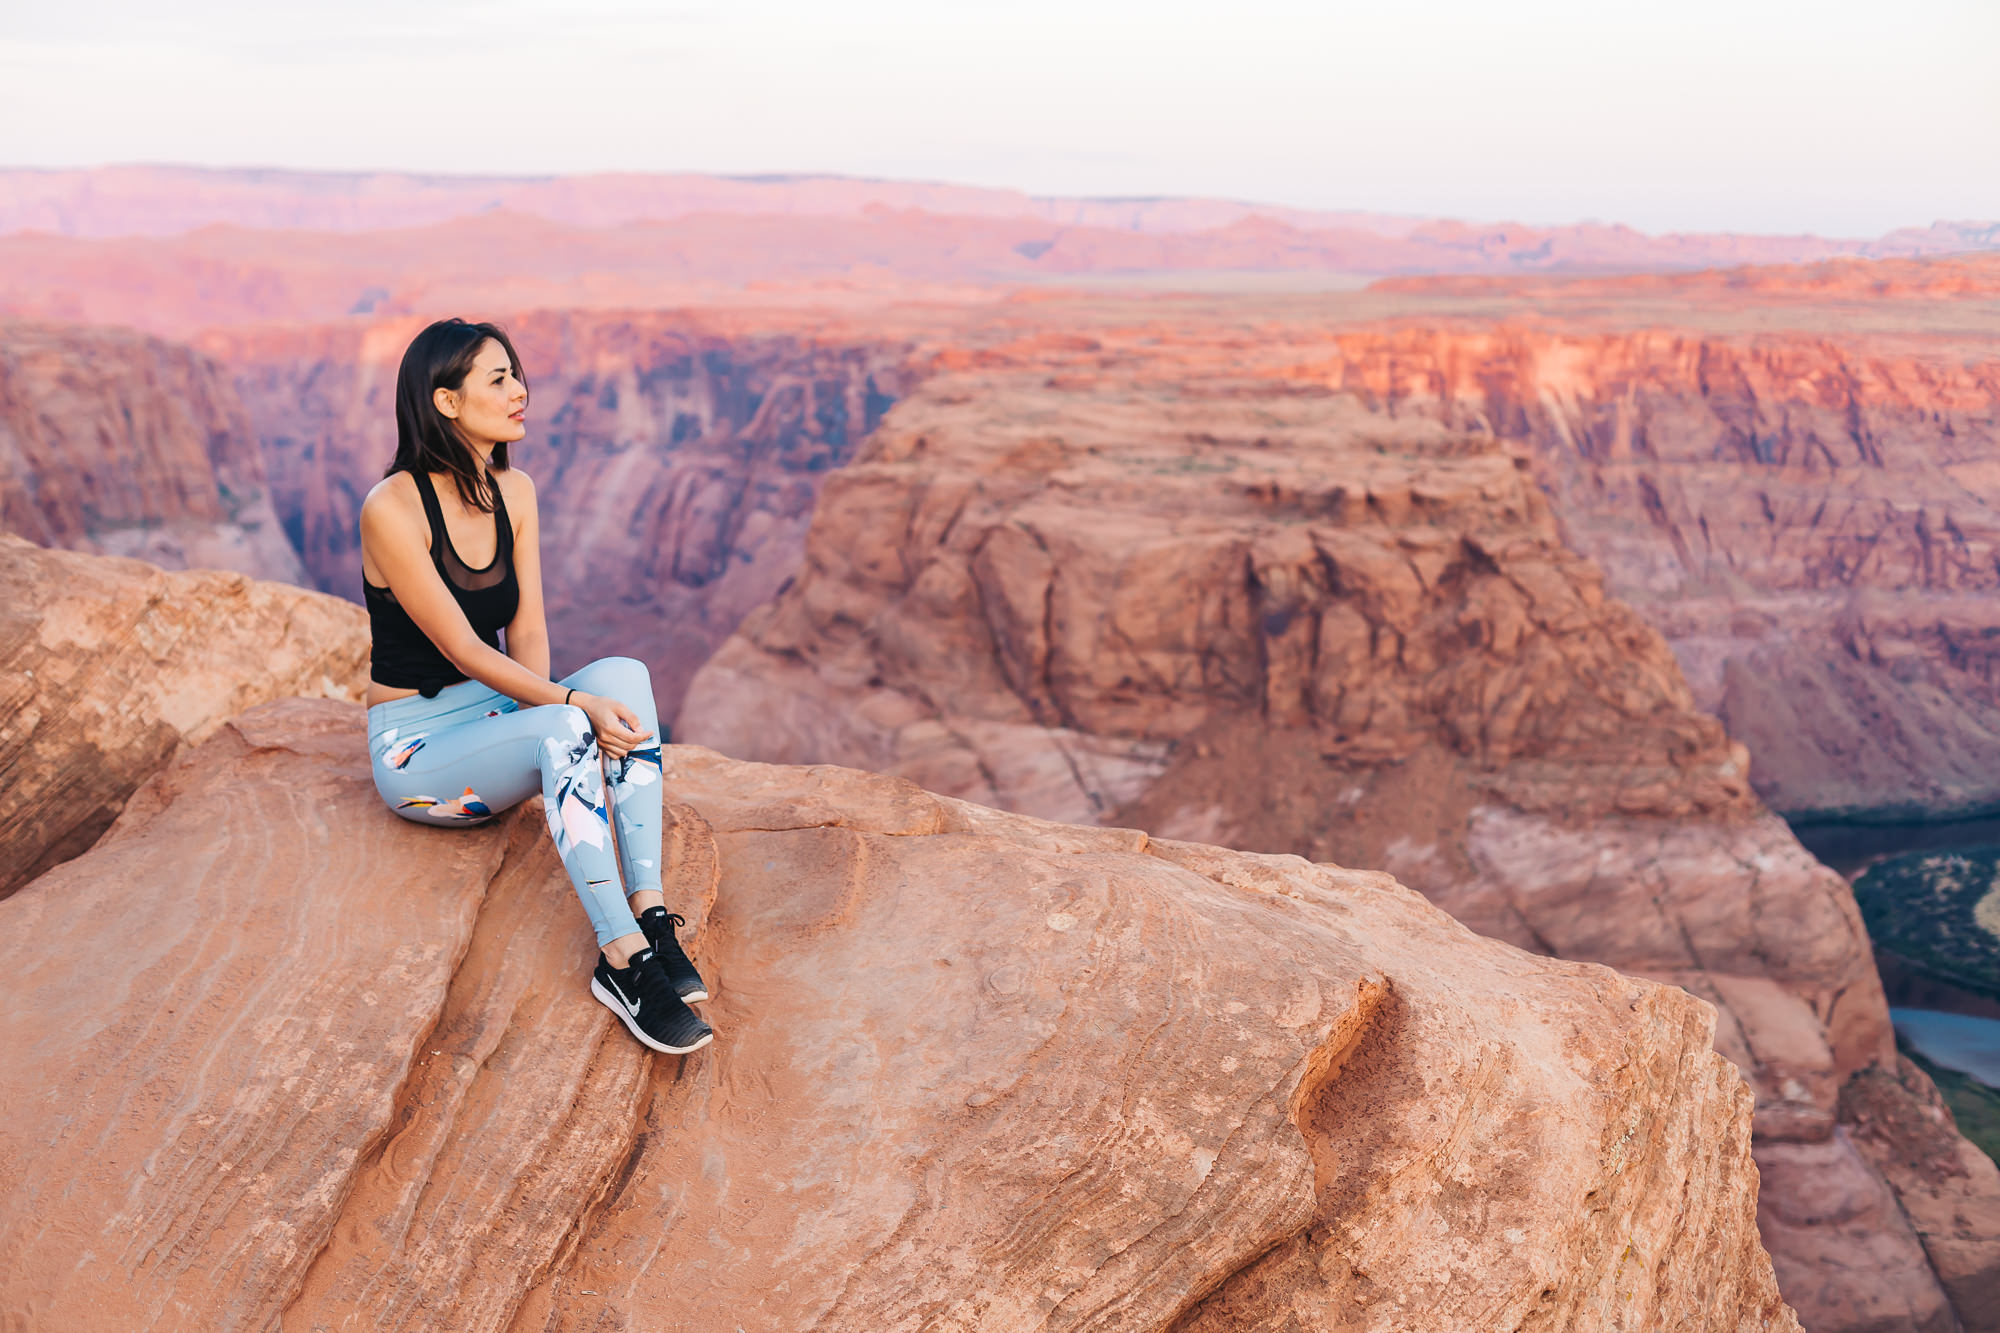 Taking in all the beautiful colors of the rocks at Horseshoe Bend